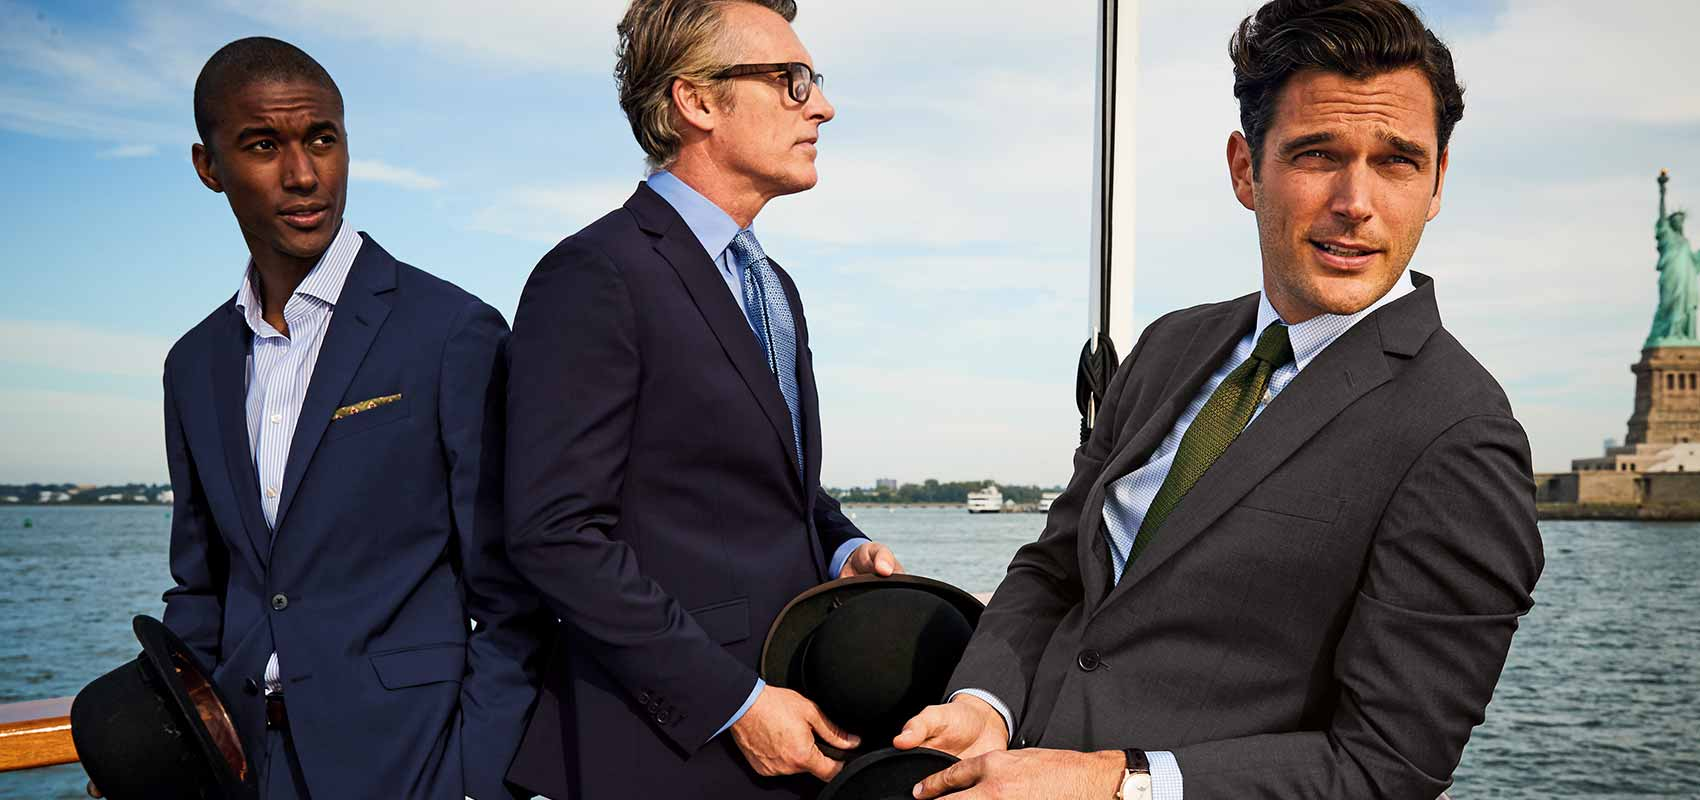 Charles Tyrwhitt  classic fit suits